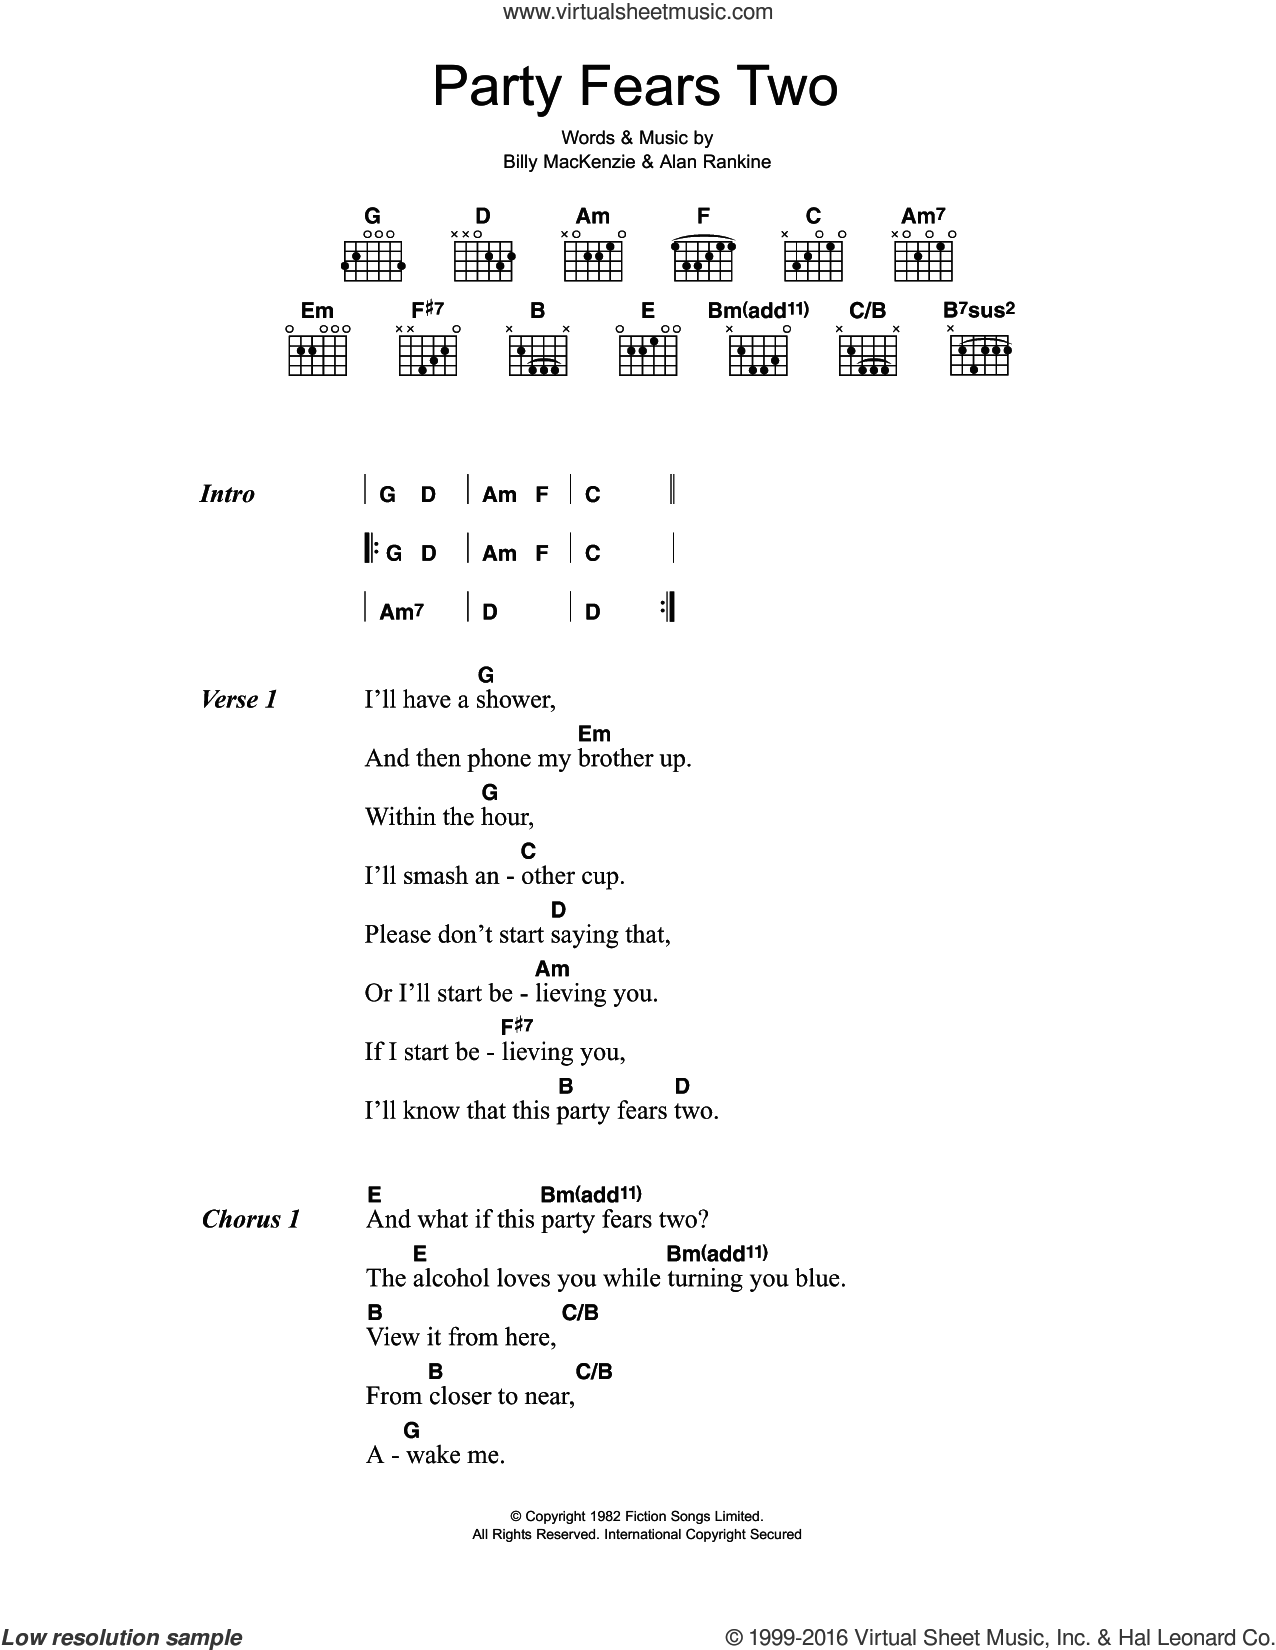 Party Fears Two sheet music for guitar (chords) by The Associates, Alan Rankine and Billy MacKenzie, intermediate skill level